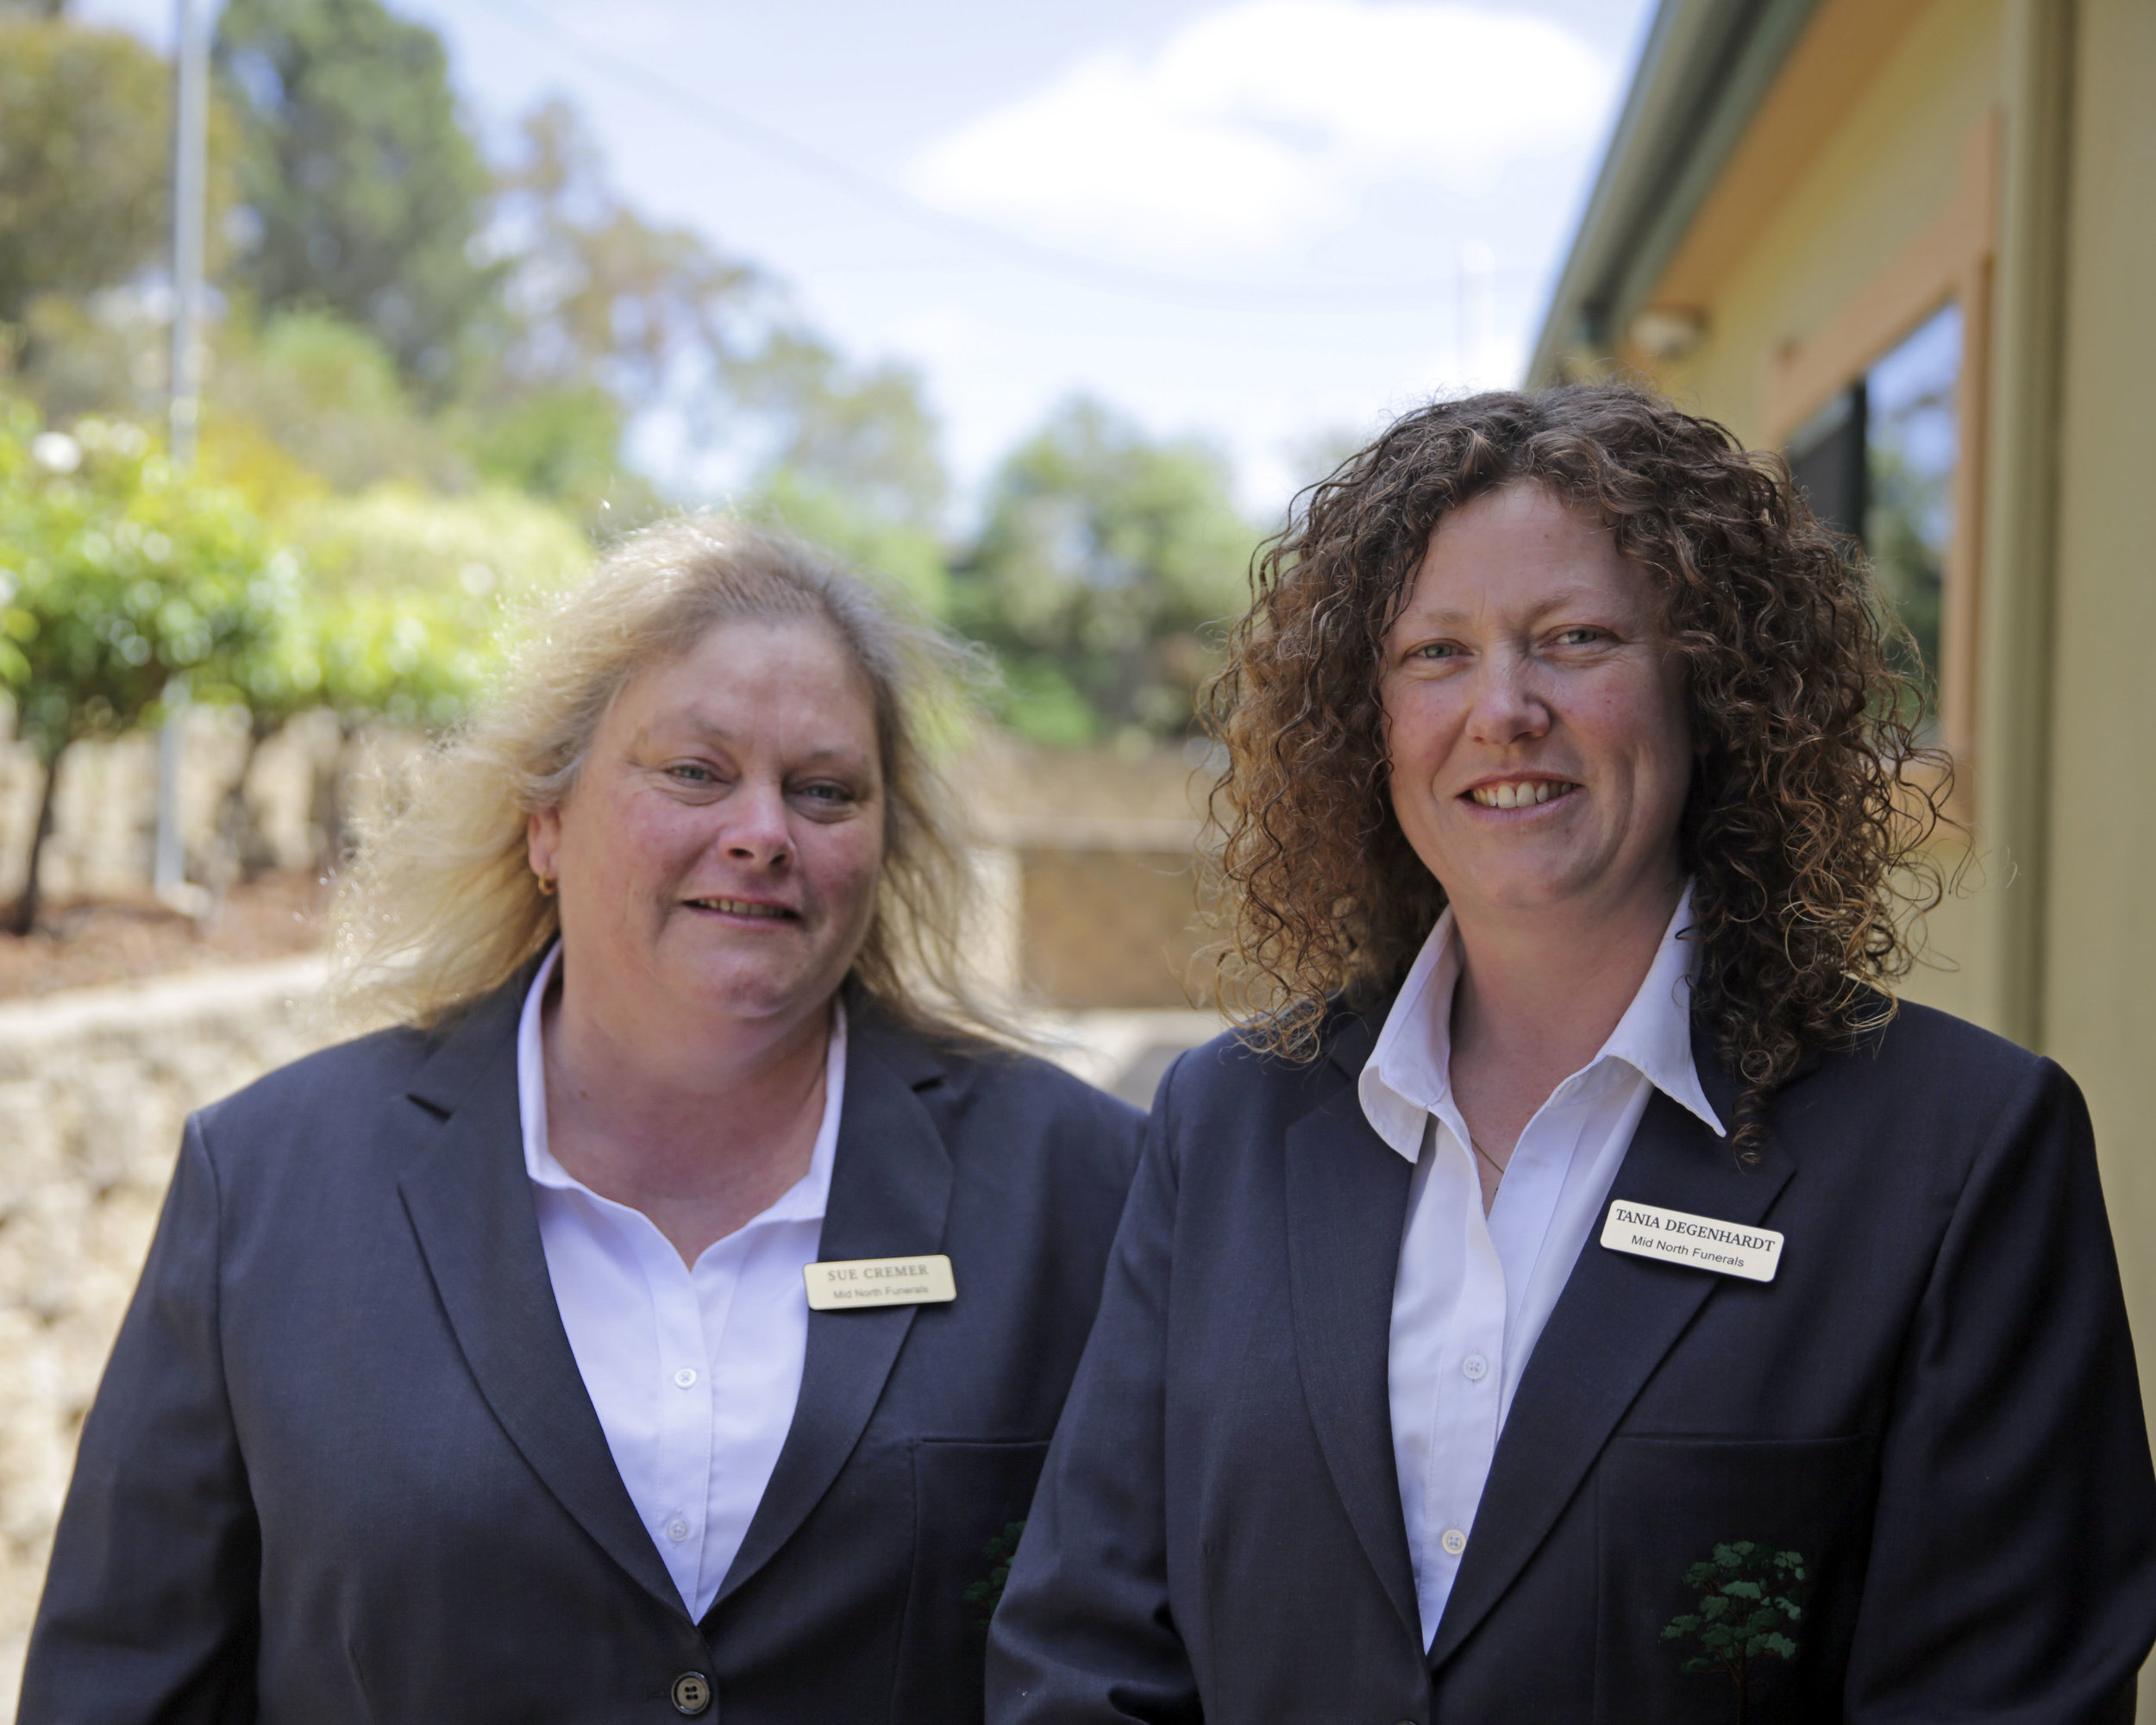 Sue Cremer (L) is the daughter and step daughter of Lee and Eric Clode, respectively. She has been a Funeral Directing Assistant since 2006. Tania Degenhardt (R) is Mid North Funerals' Manager. She began work with Eric in Burra in 1997.